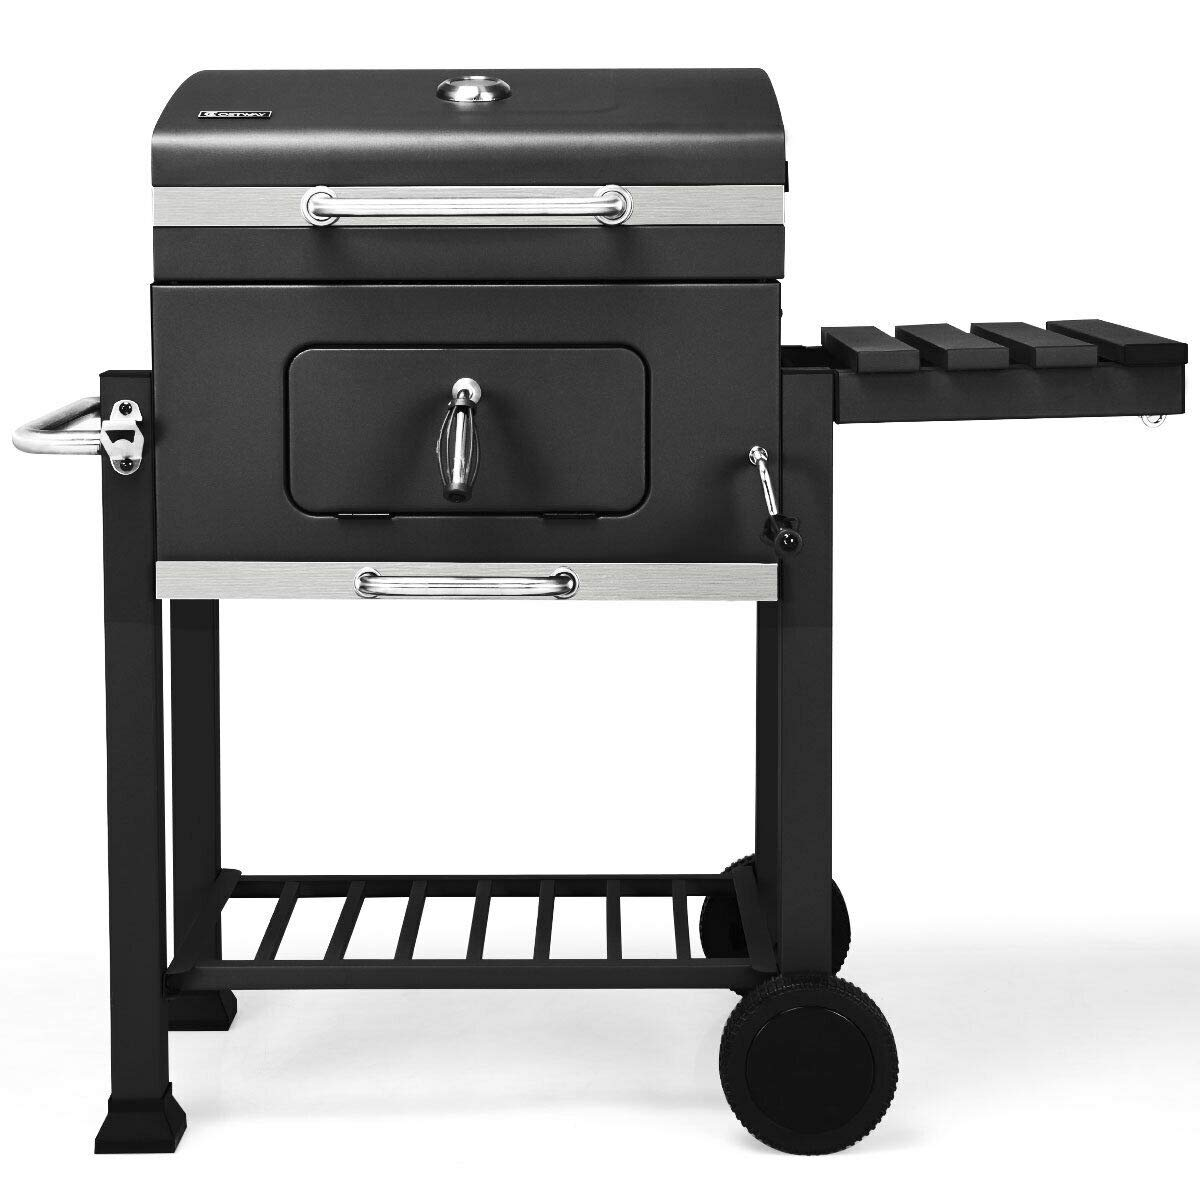 Moralty Charcoal Grill Barbecue BBQ Grill Outdoor Patio Backyard Cooking Wheels Portable by Moralty